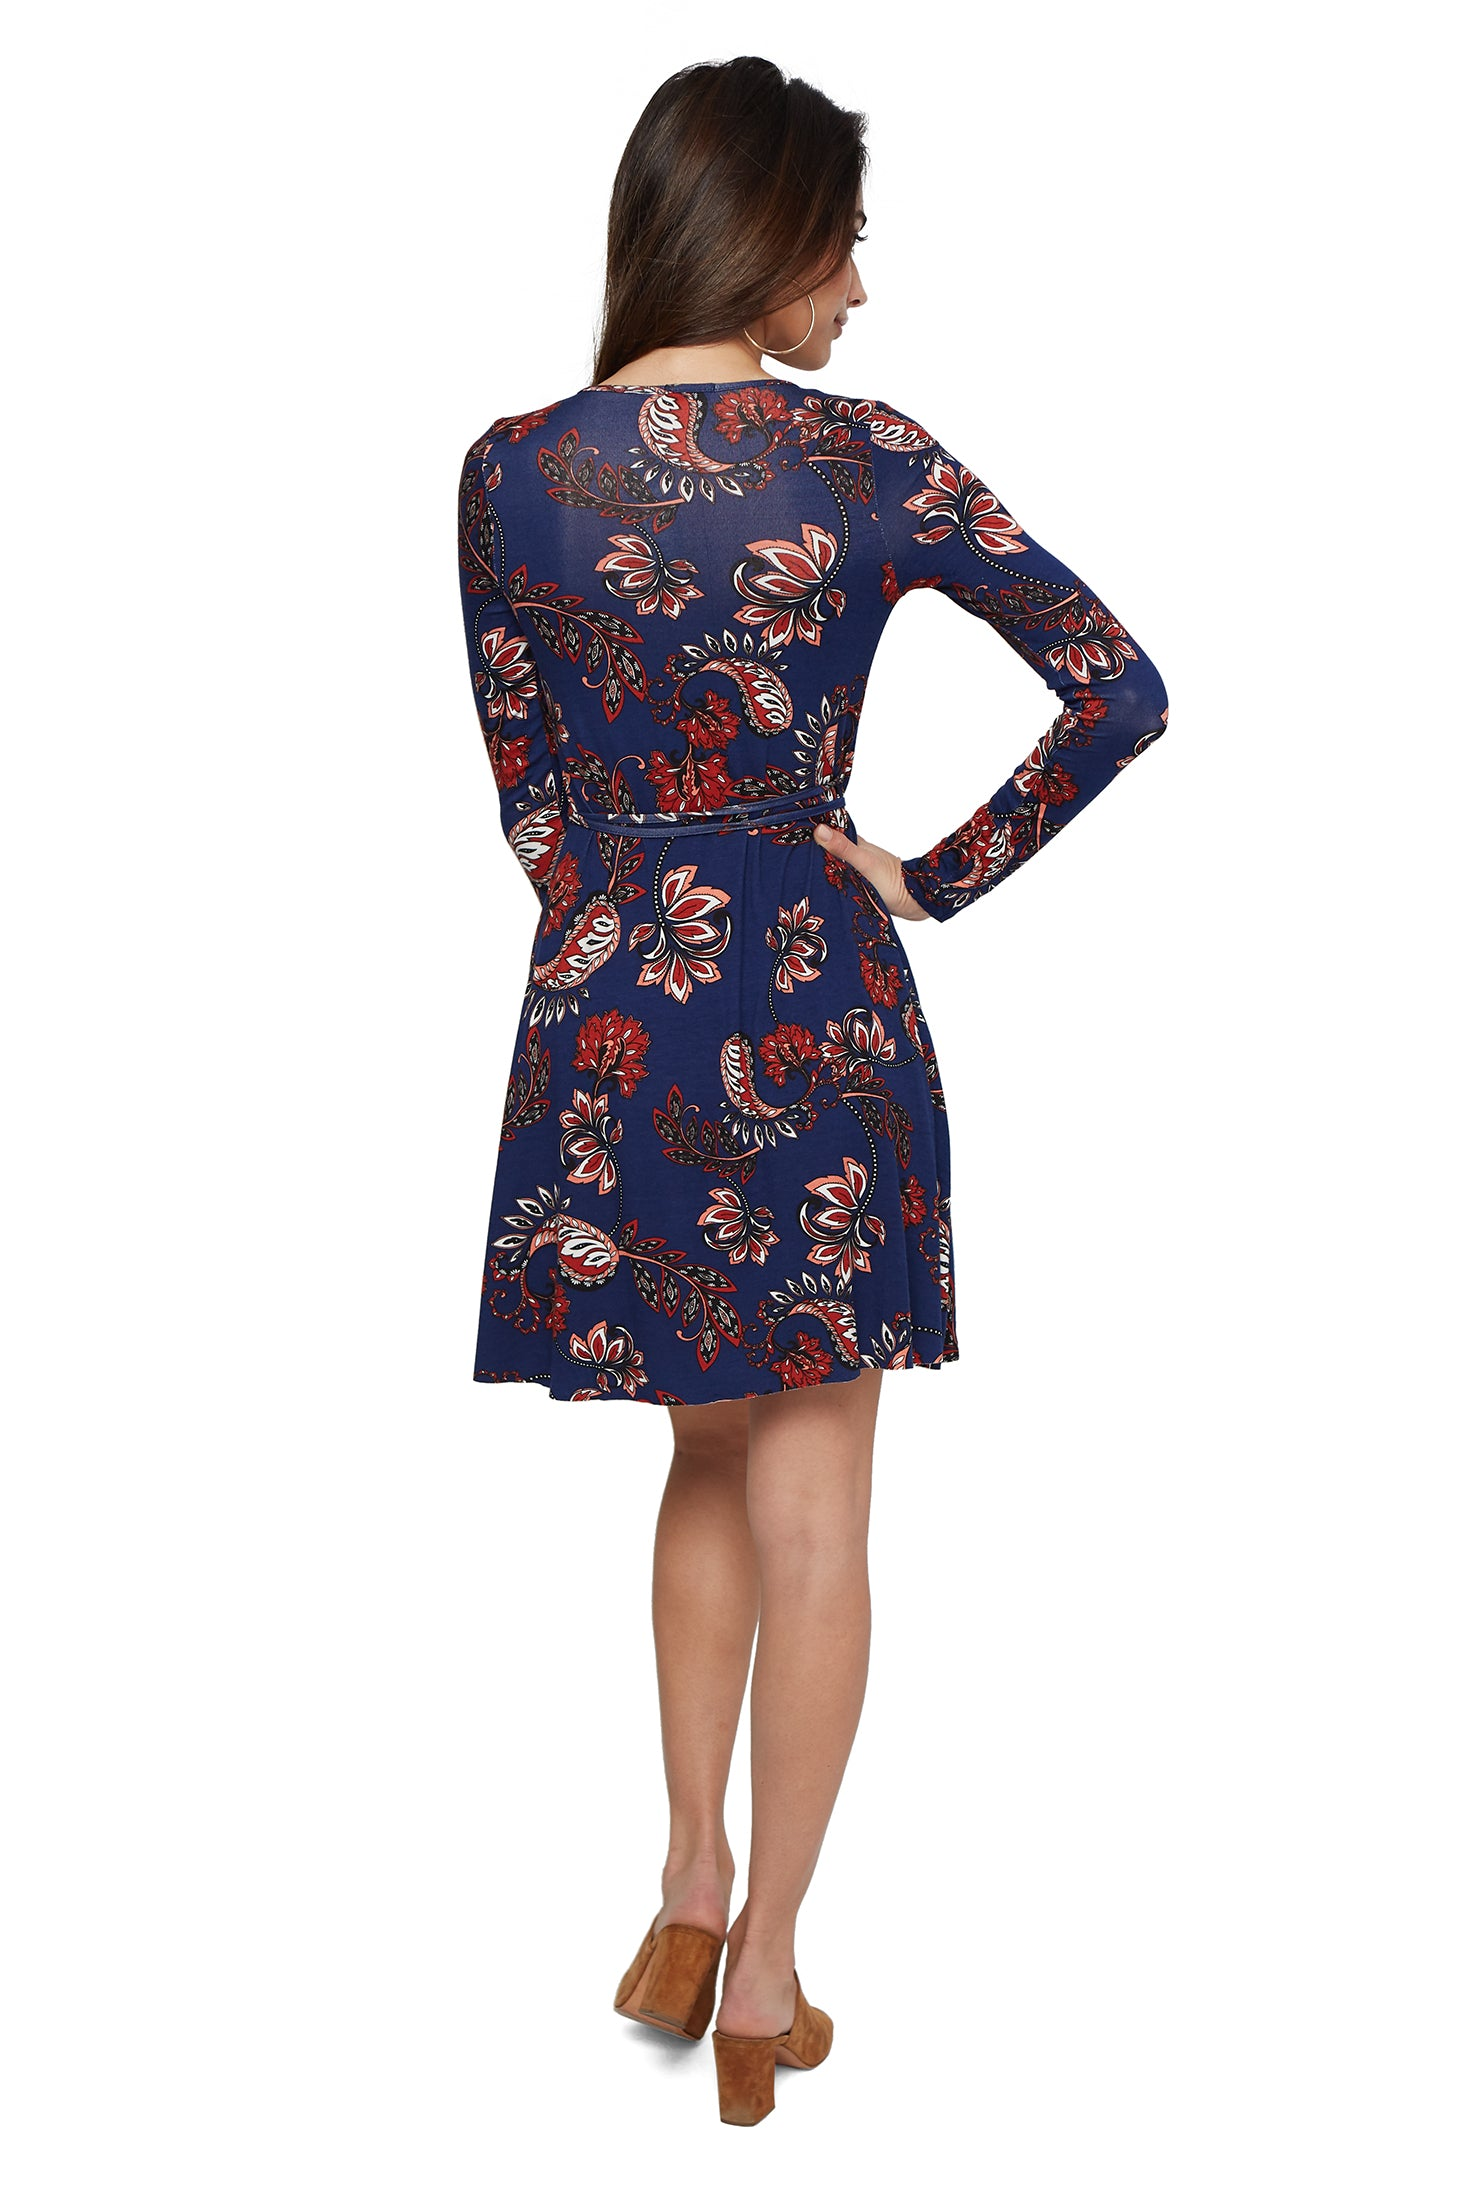 Janice Wrap Dress - Navy Plume